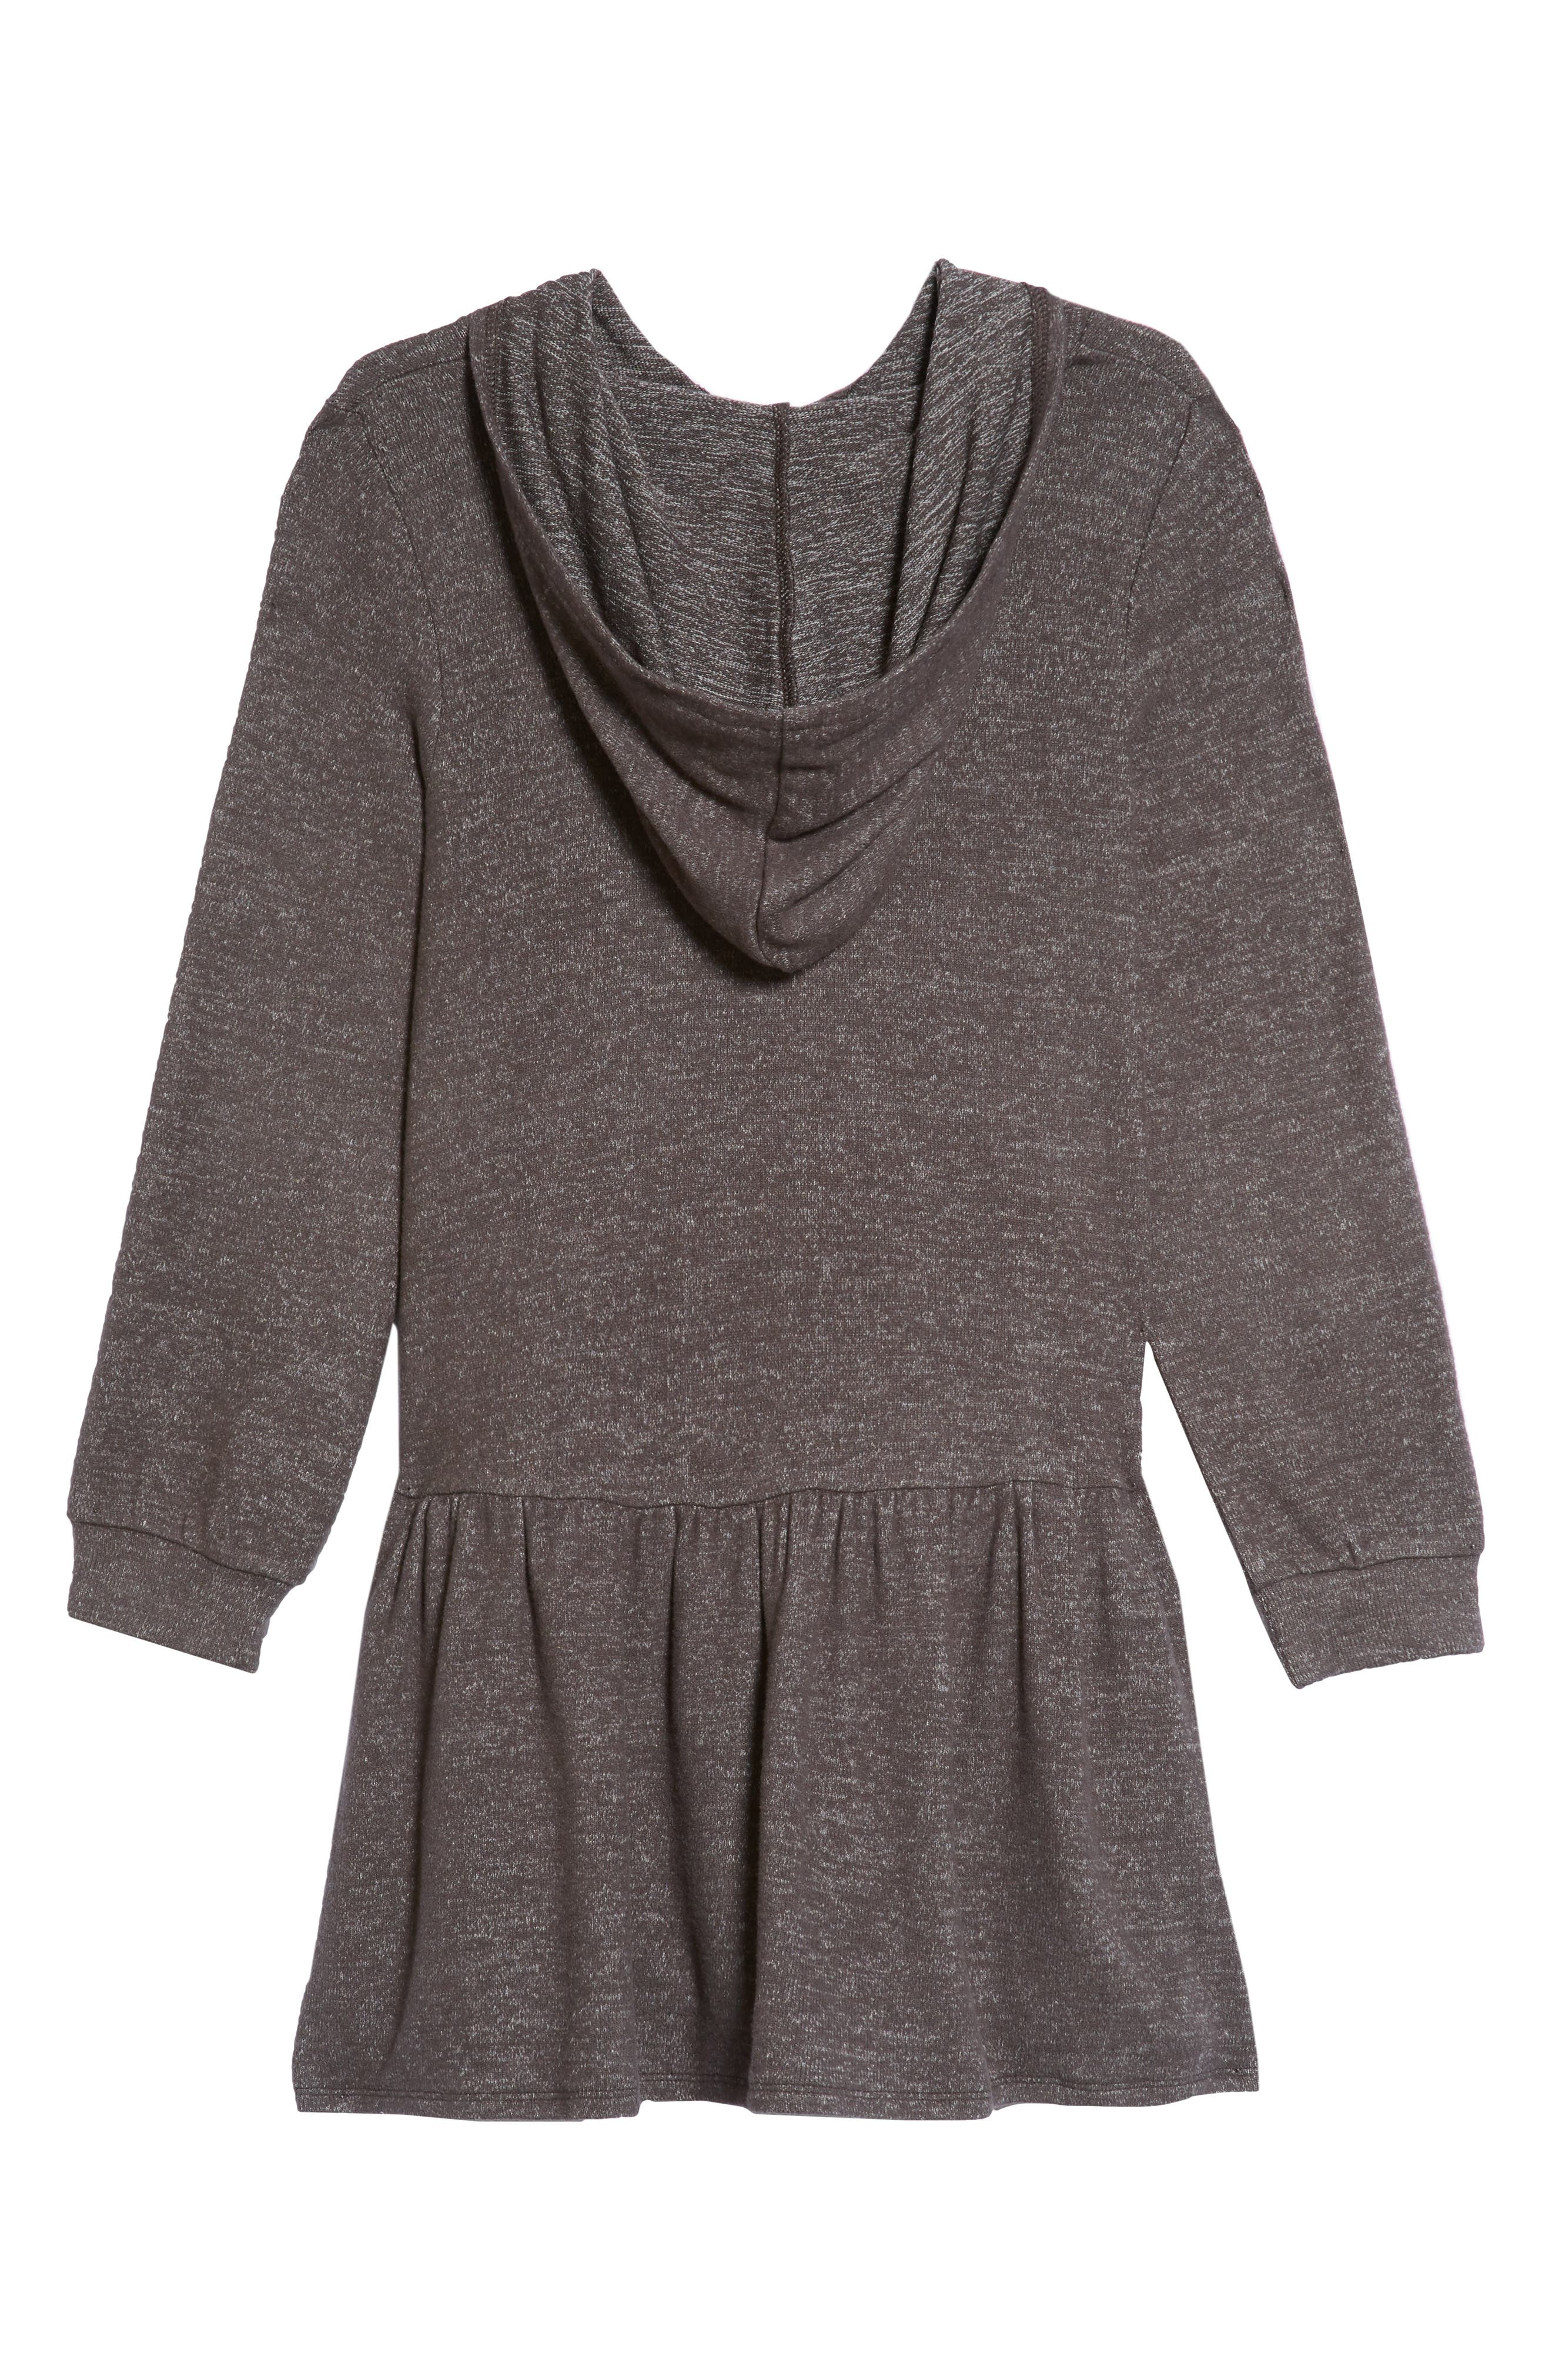 Cozy Hooded Dress,                             Alternate thumbnail 2, color,                             021